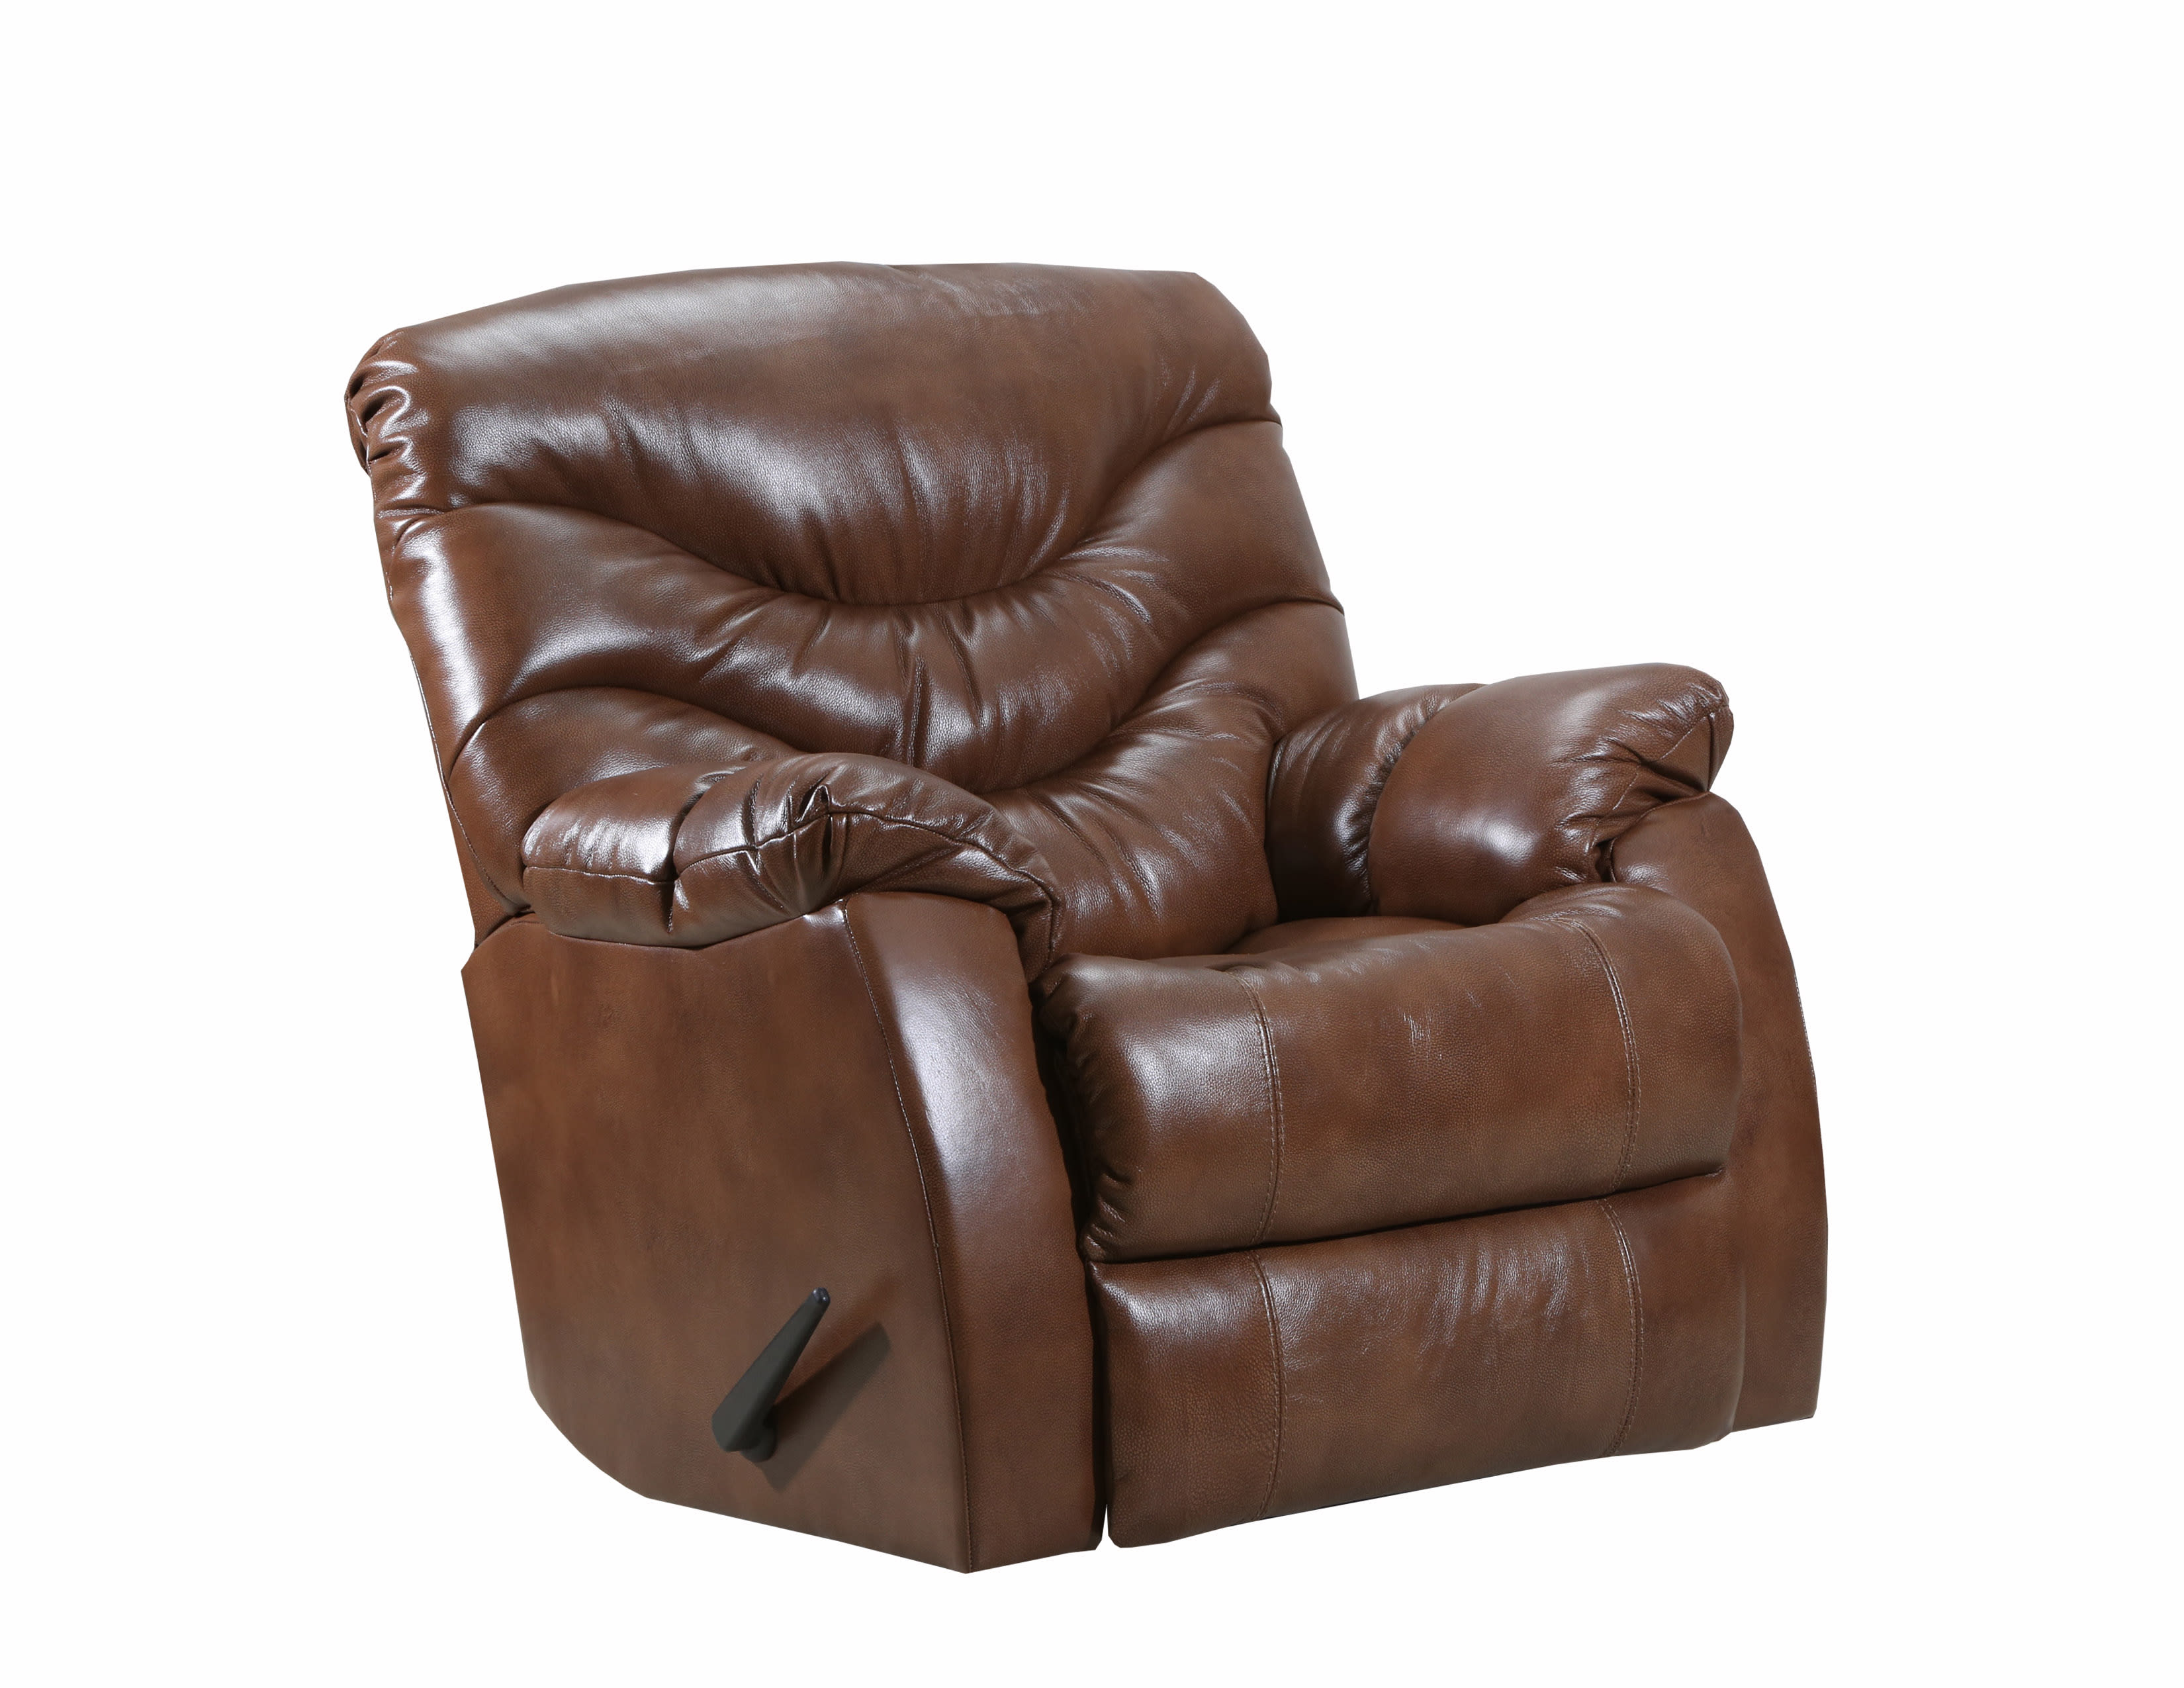 Lane Furniture Yellowstone Tobacco Swivel Rocker Recliner & Reviews Intended For Swivel Tobacco Leather Chairs (View 10 of 25)